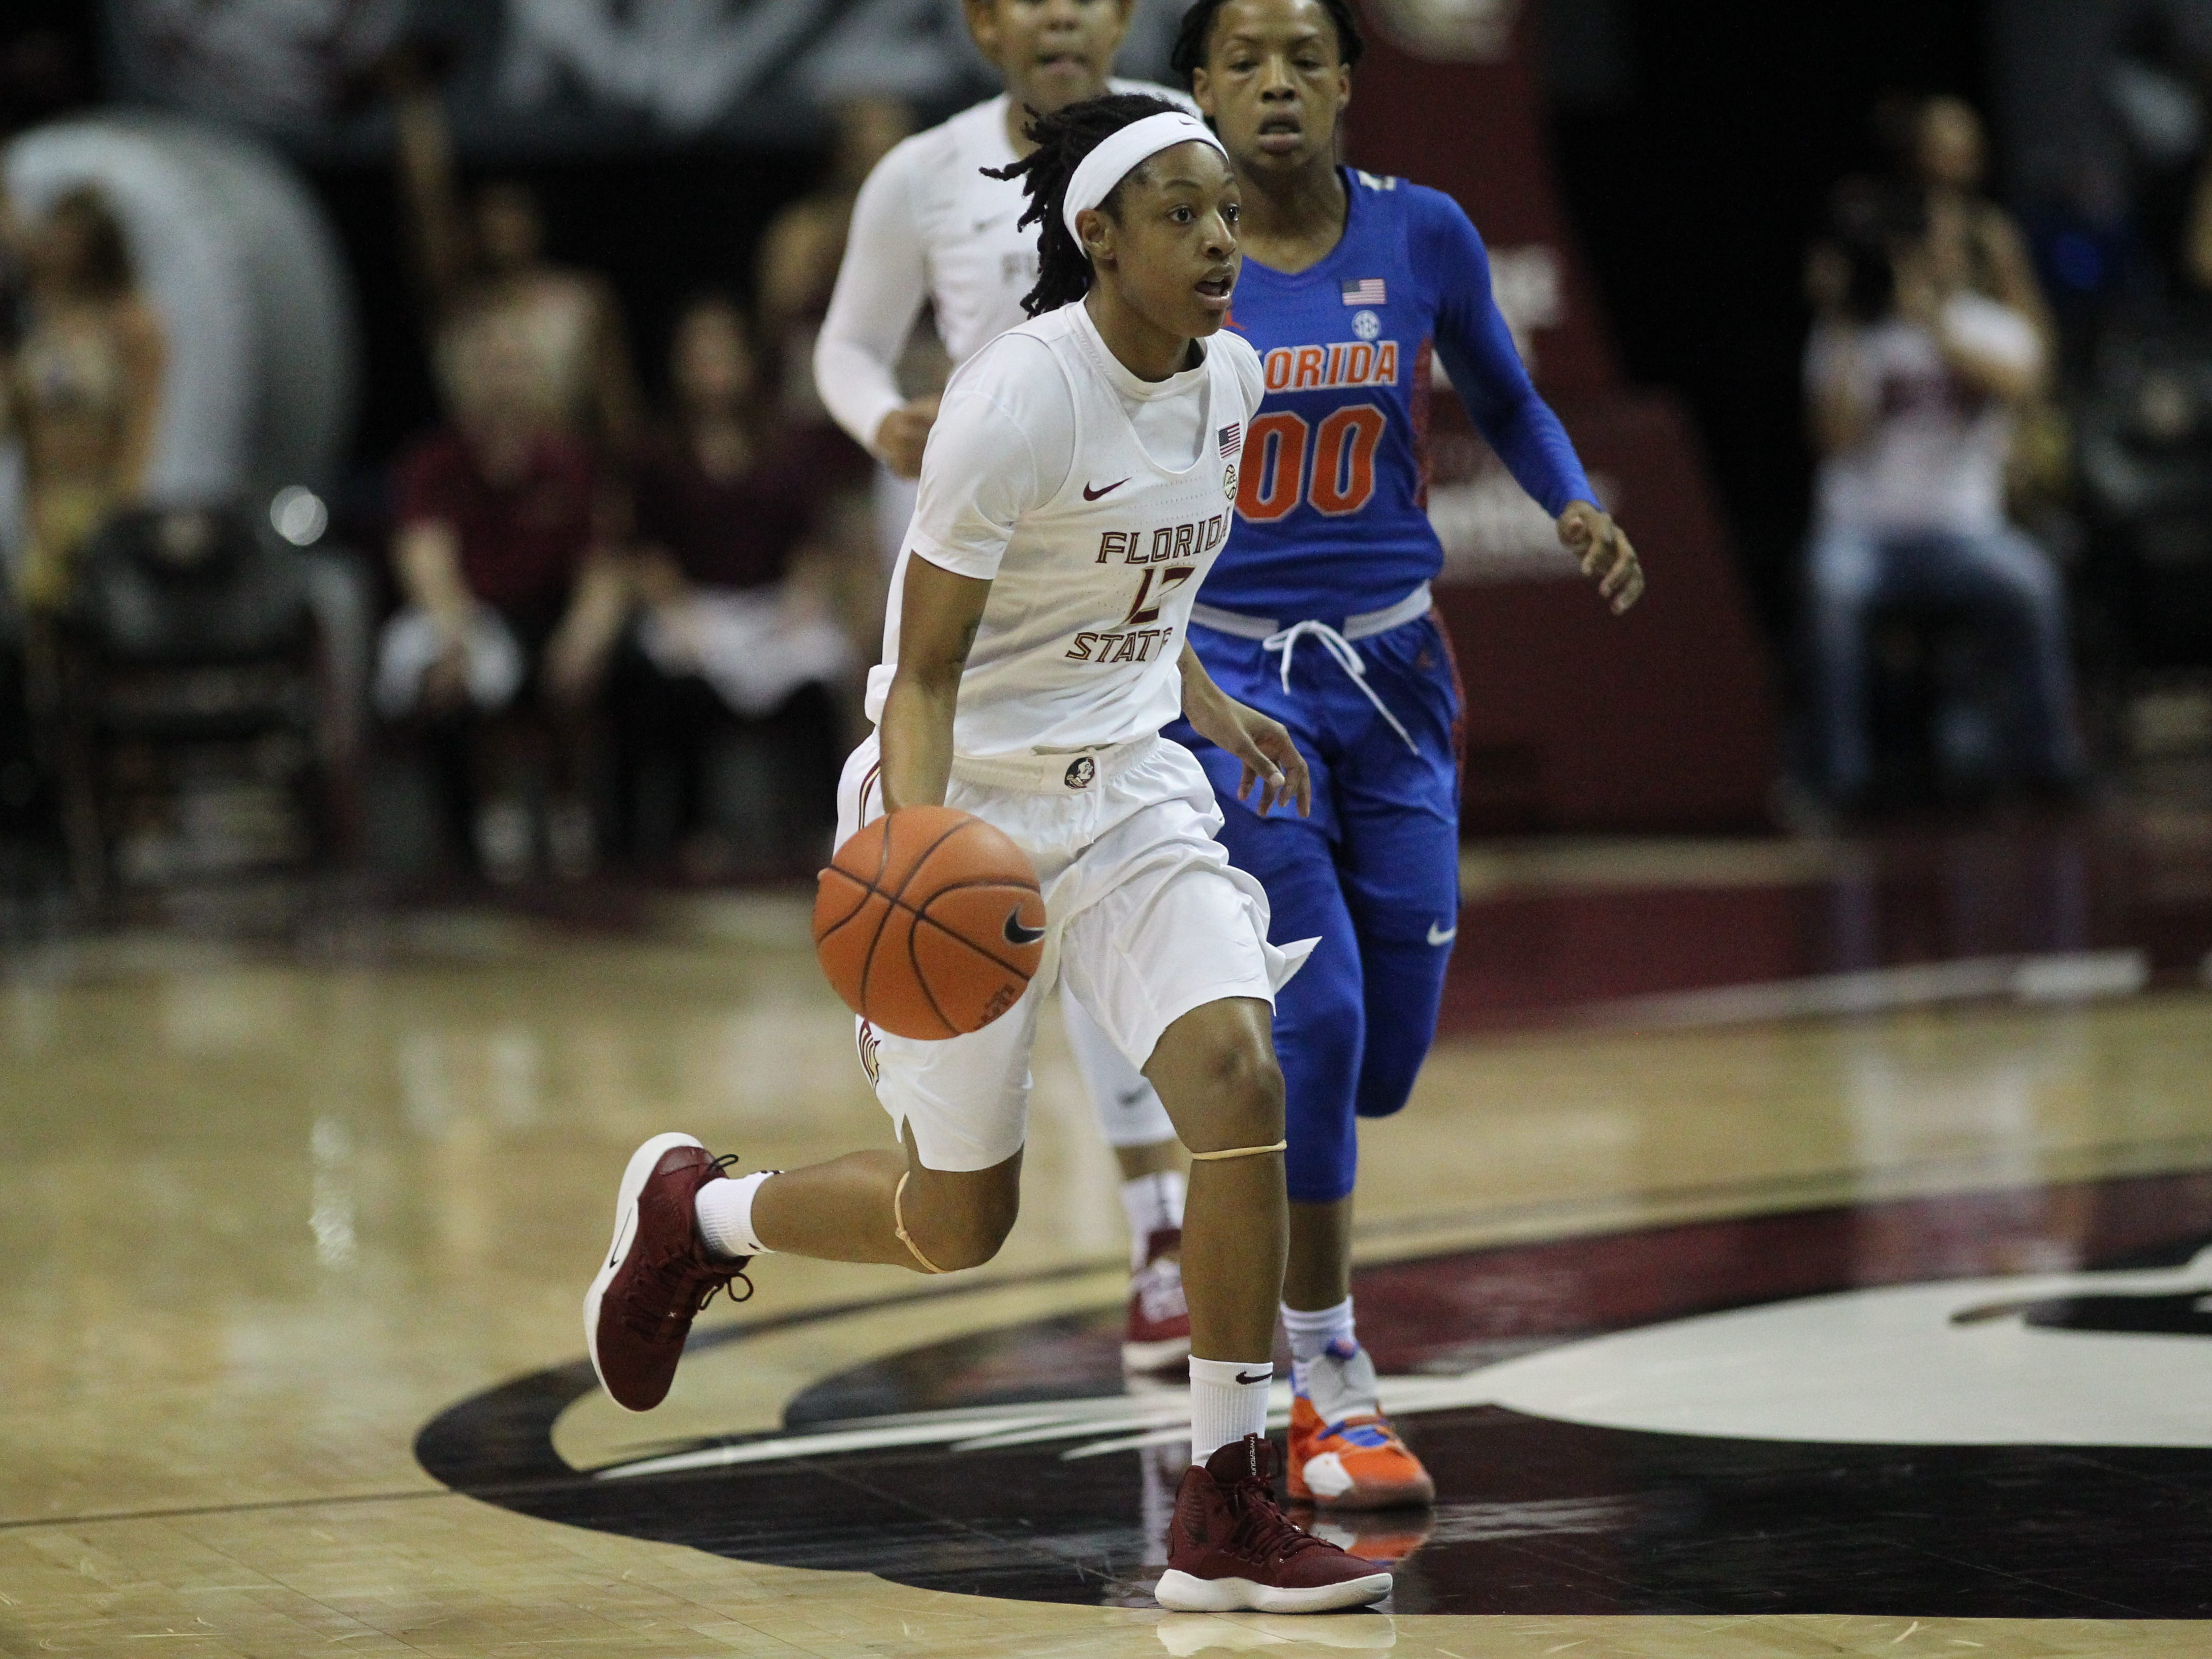 Florida State's Nicki Ekhomu dribbles on a fastbreak during the first half of the Seminoles' game against Florida at the Tucker Civic Center on Nov. 11, 2018.